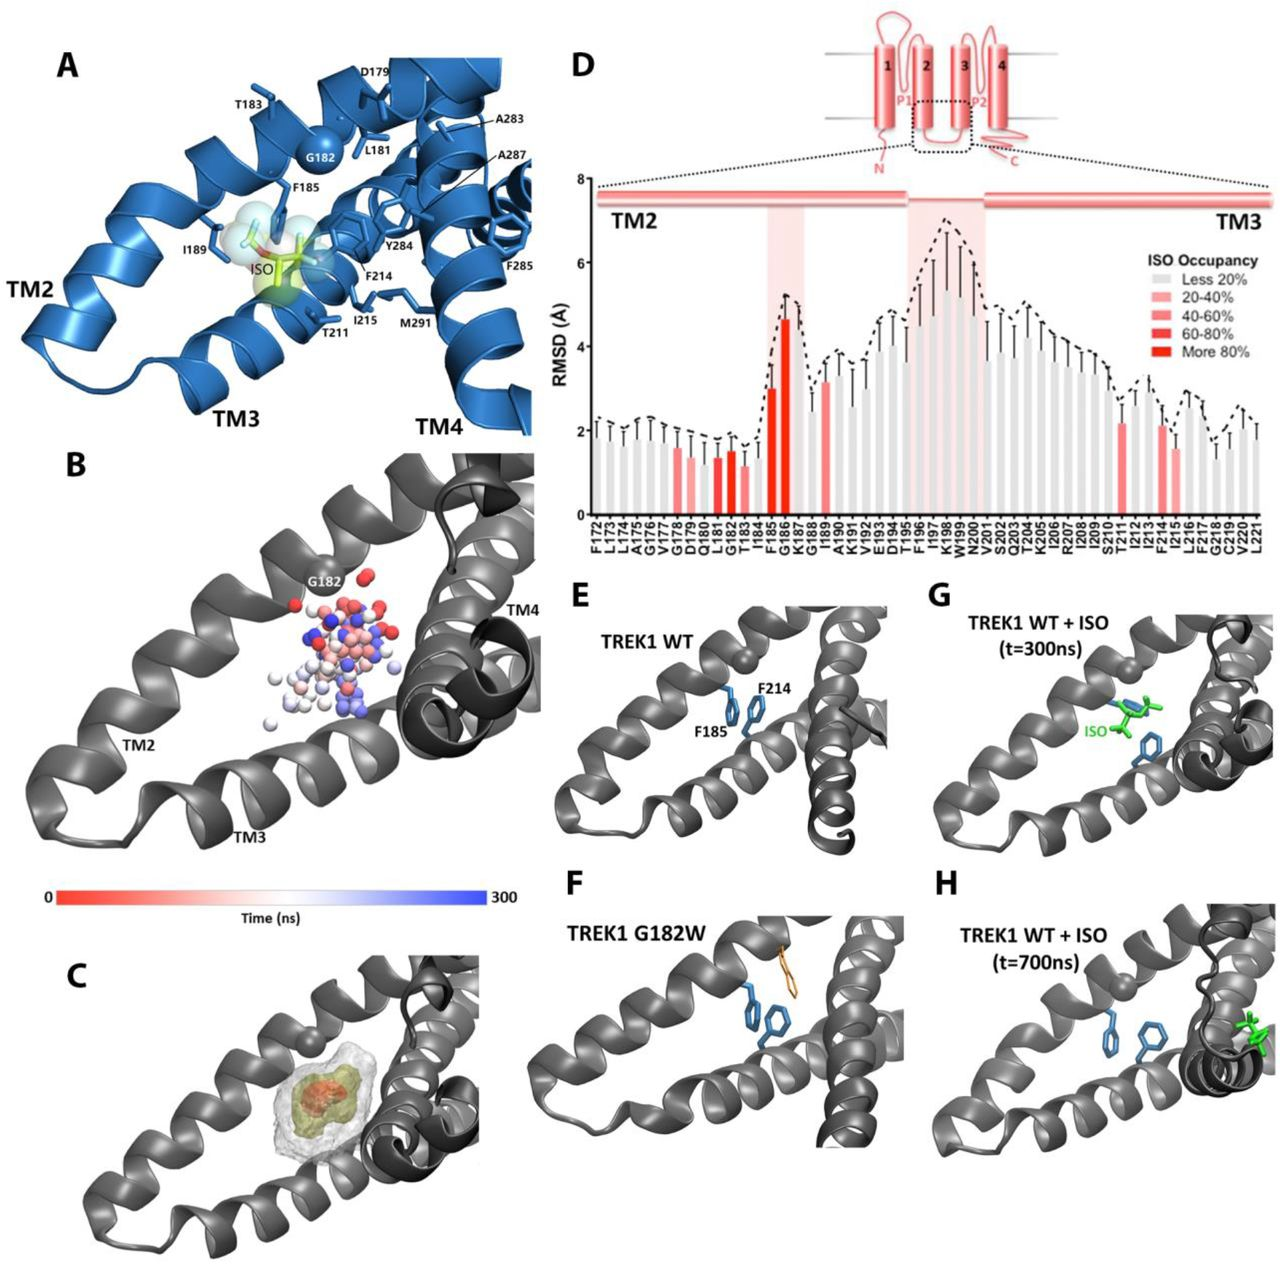 Mass spectrometry analysis of purified human TRAAK. Results of MS analysis of TRAAK in the absence of reaction with Azi-isoflurane (top) or following reaction with 30 μM Azi-isoflurane (bottom). Regions positively identified by mass spectrometry analysis are shown in blue in the TRAAK structural model (PDB ID 4WFE) and in black font in the sequence data. Regions absent from MS data are displayed in matching color in both the structural model and the sequence data. TRAAK residues homologous to TREK1 positions that exhibit high isoflurane occupancy in MD simulation are displayed as spheres in the structural model of TRAAK and are denoted in the sequence data by an enlarged font. All of these residues are identified by MS, but none show evidence of Azi-isoflurane labeling. A group of residues in the C-terminal region of TRAAK (marked in grey in the sequence data) were absent from our MS analysis but are not present in the TRAAK structural model.